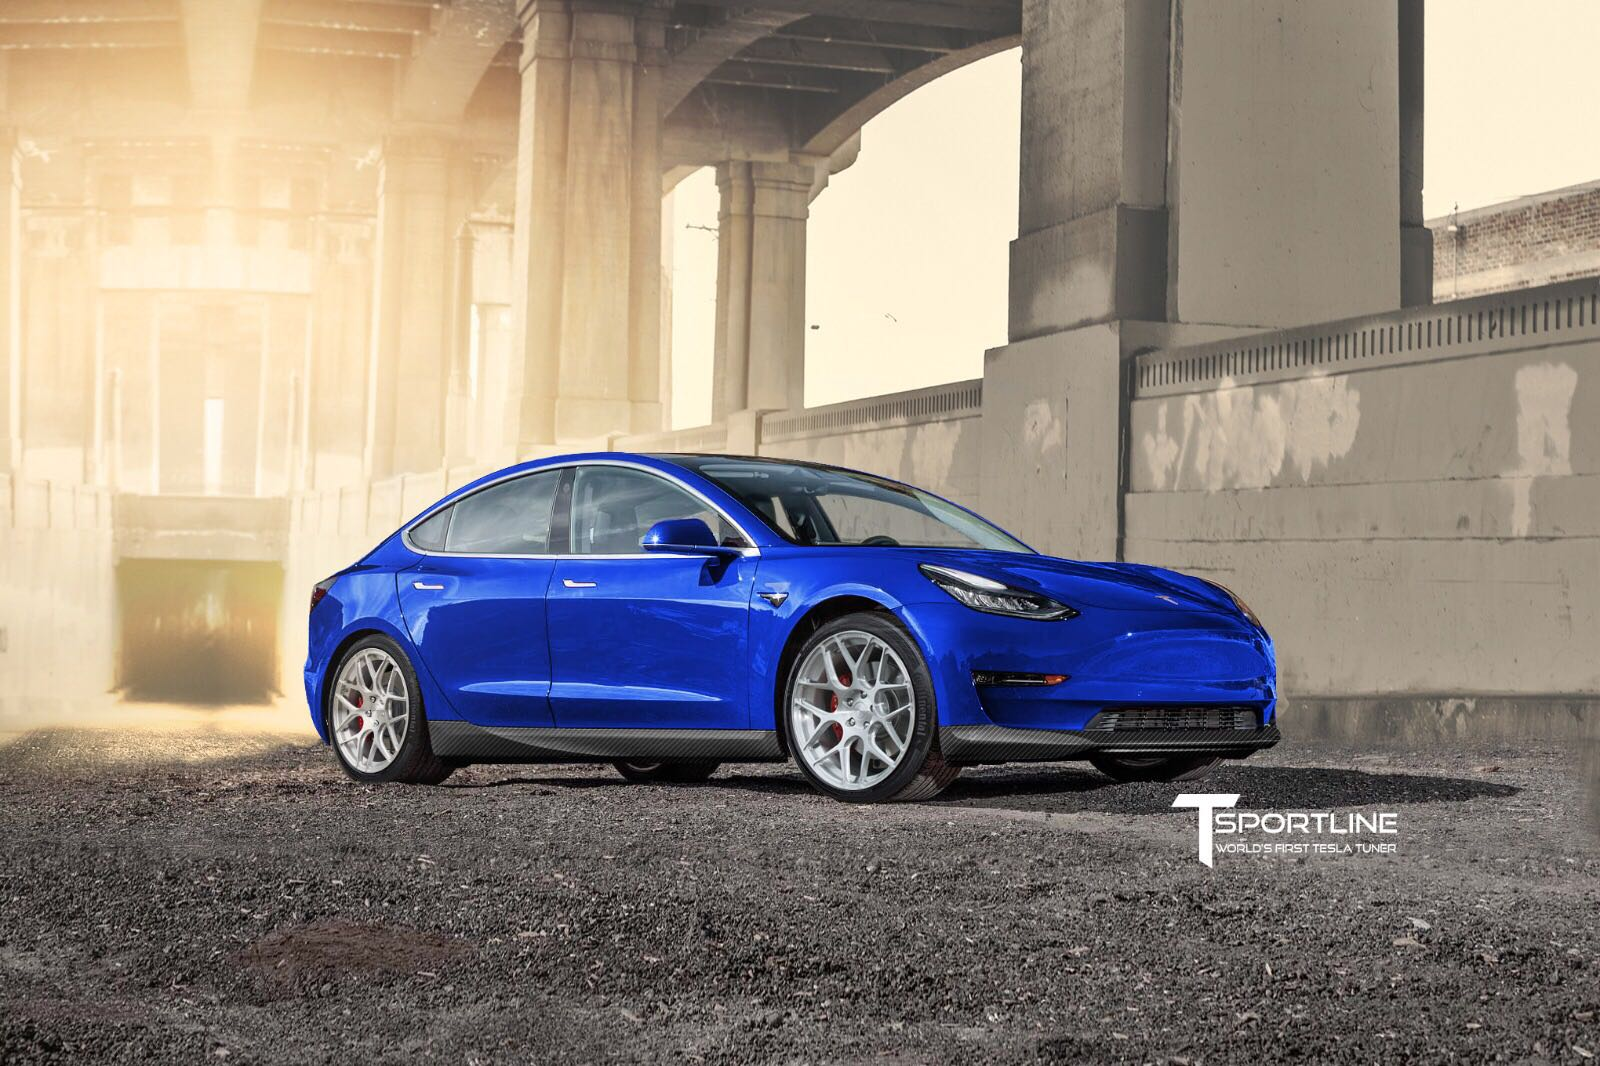 Tesla Model 3 aftermarket modifications are already being